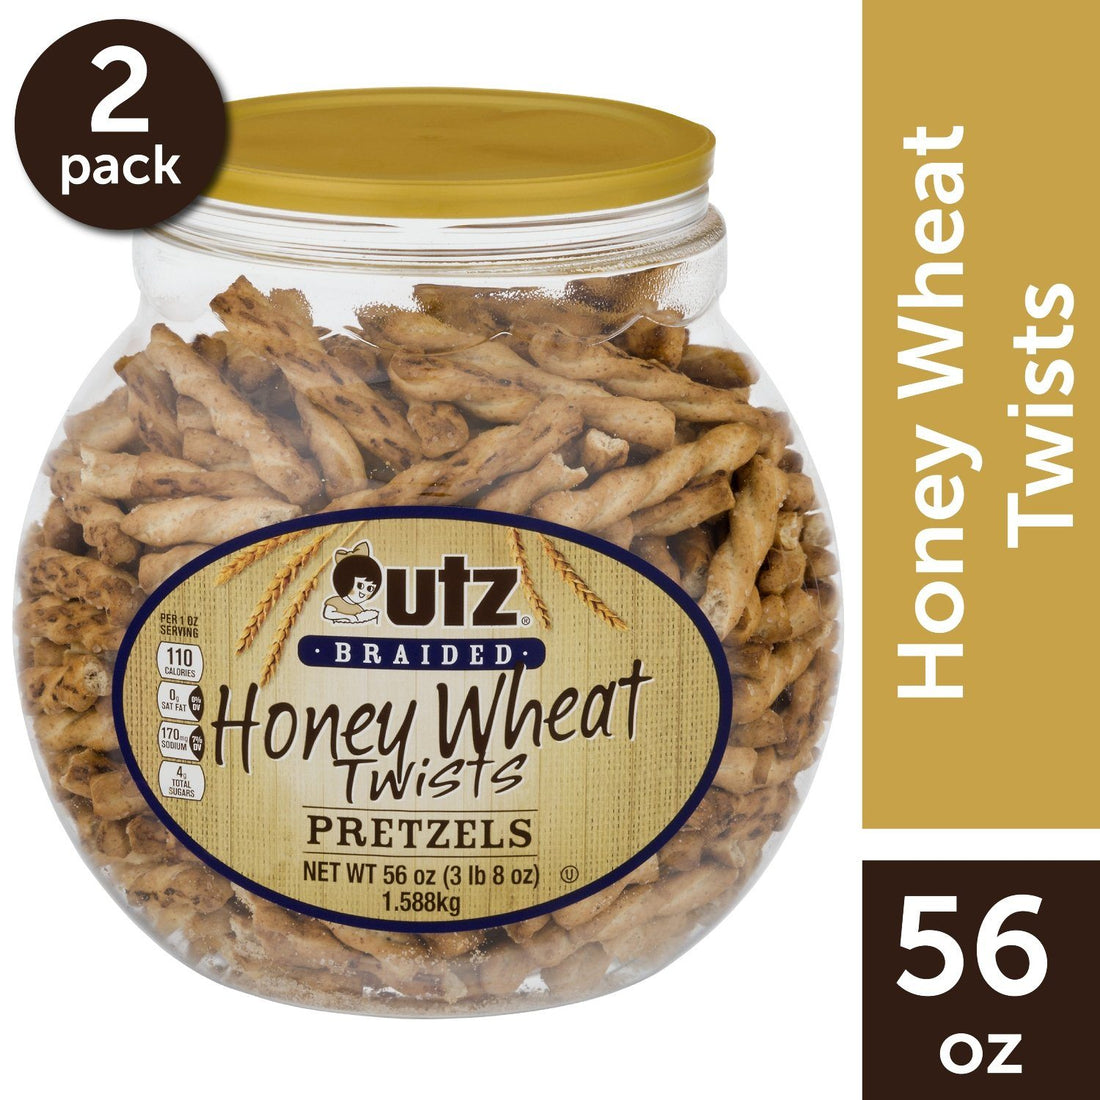 Utz Pretzels, Honey Wheat Braided Twists 56 oz. Barrel (2 Pack)